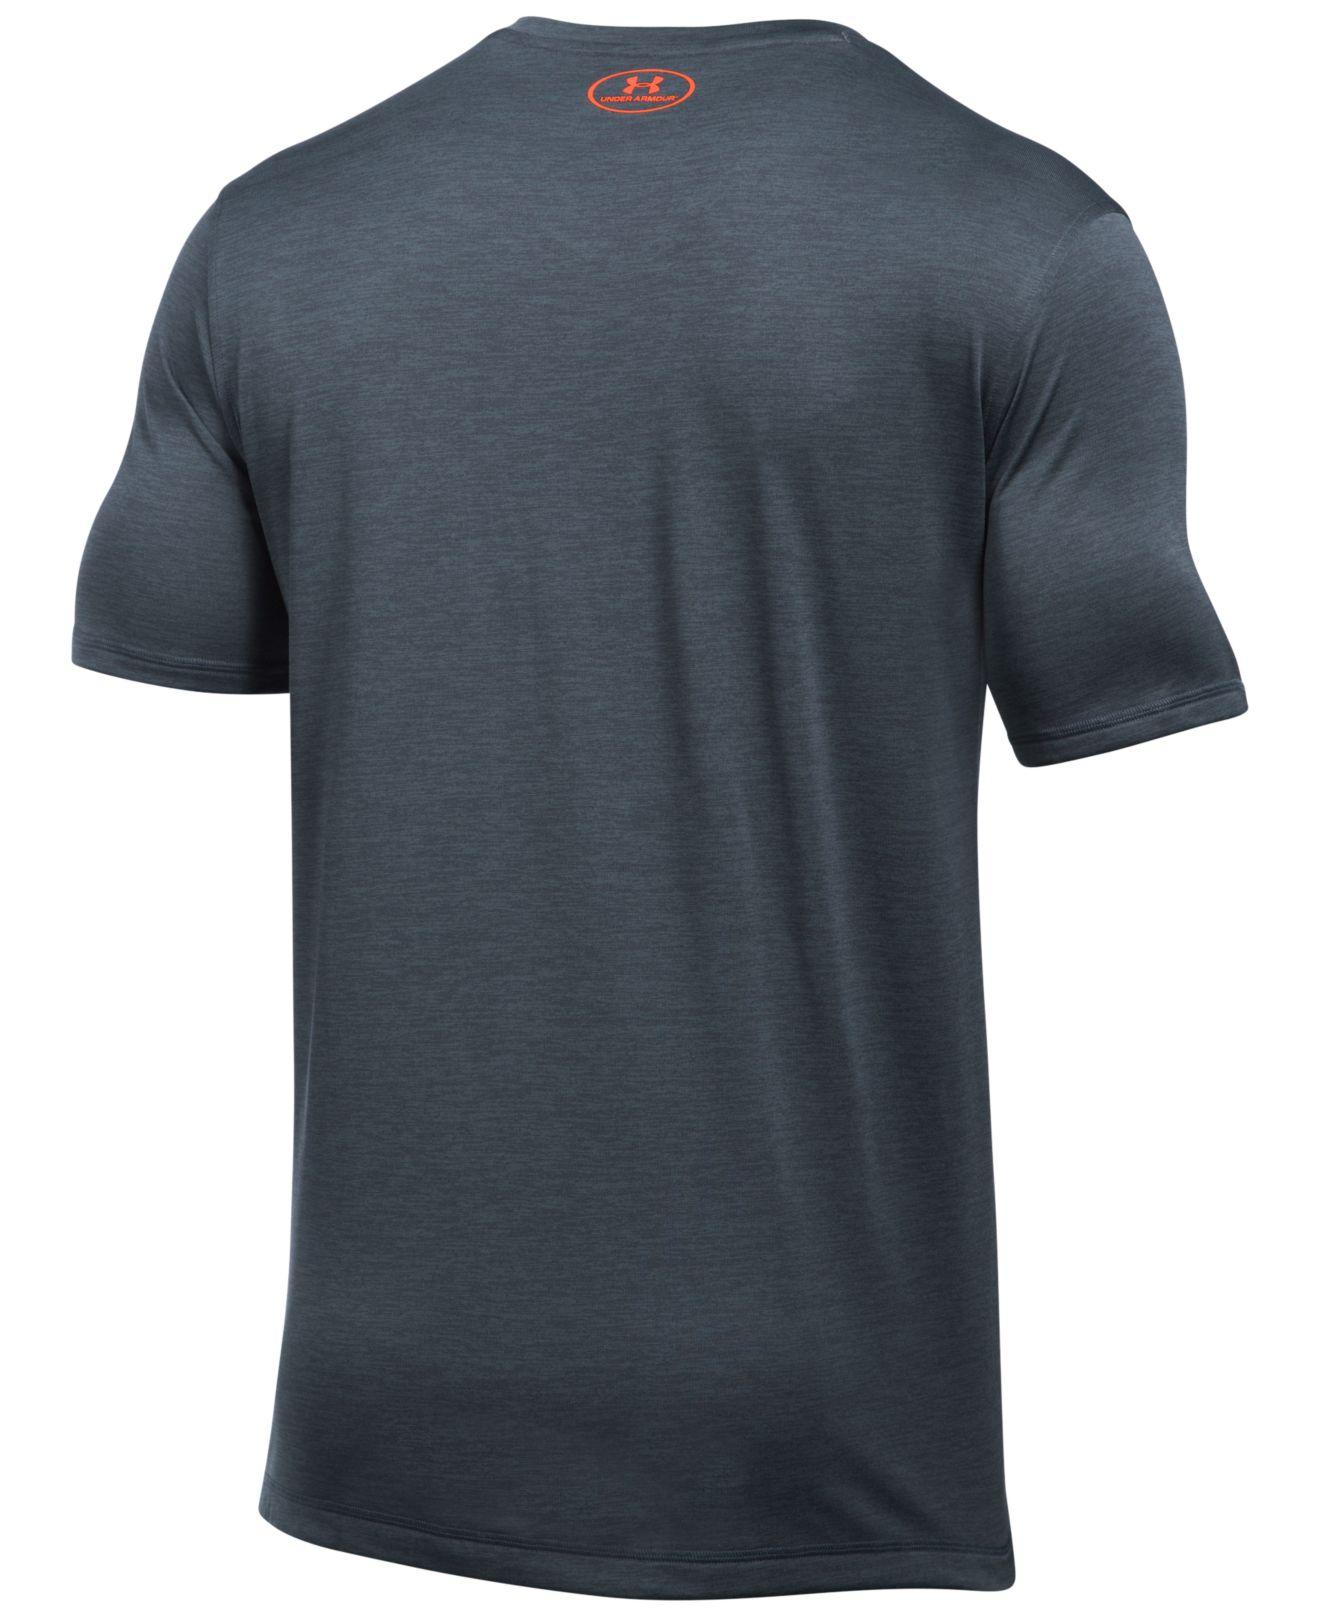 Under armour v neck tech t shirt in gray for men lyst for Gray under armour shirt